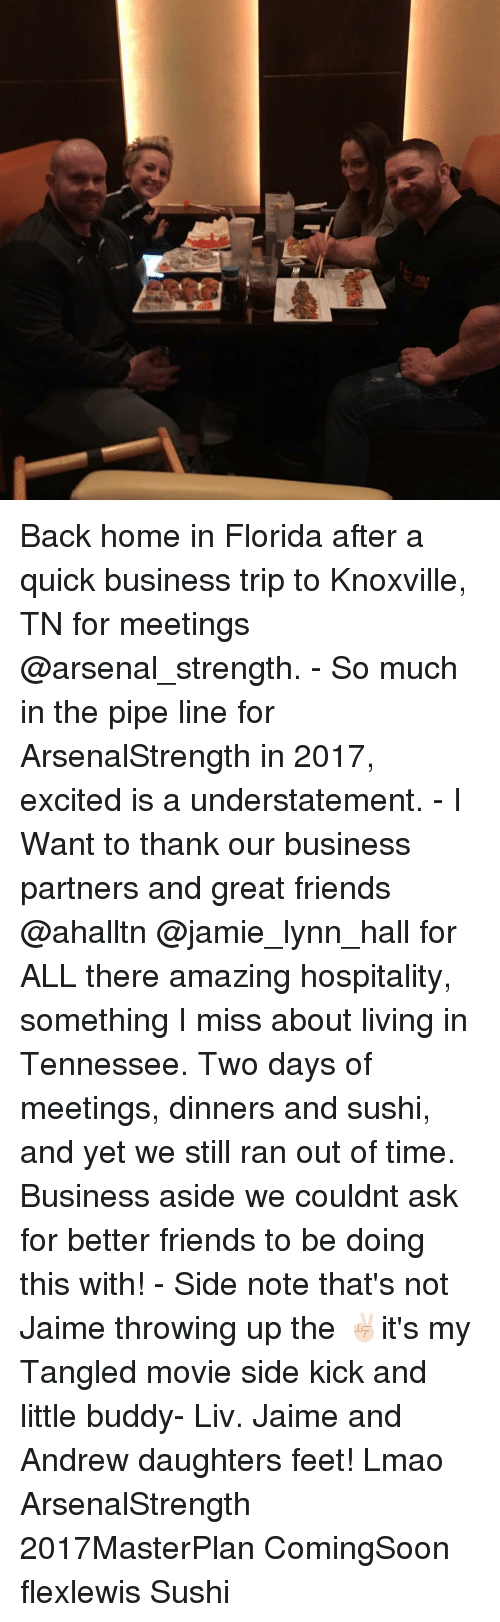 Excition: Back home in Florida after a quick business trip to Knoxville, TN for meetings @arsenal_strength. - So much in the pipe line for ArsenalStrength in 2017, excited is a understatement. - I Want to thank our business partners and great friends @ahalltn @jamie_lynn_hall for ALL there amazing hospitality, something I miss about living in Tennessee. Two days of meetings, dinners and sushi, and yet we still ran out of time. Business aside we couldnt ask for better friends to be doing this with! - Side note that's not Jaime throwing up the ✌🏻it's my Tangled movie side kick and little buddy- Liv. Jaime and Andrew daughters feet! Lmao ArsenalStrength 2017MasterPlan ComingSoon flexlewis Sushi